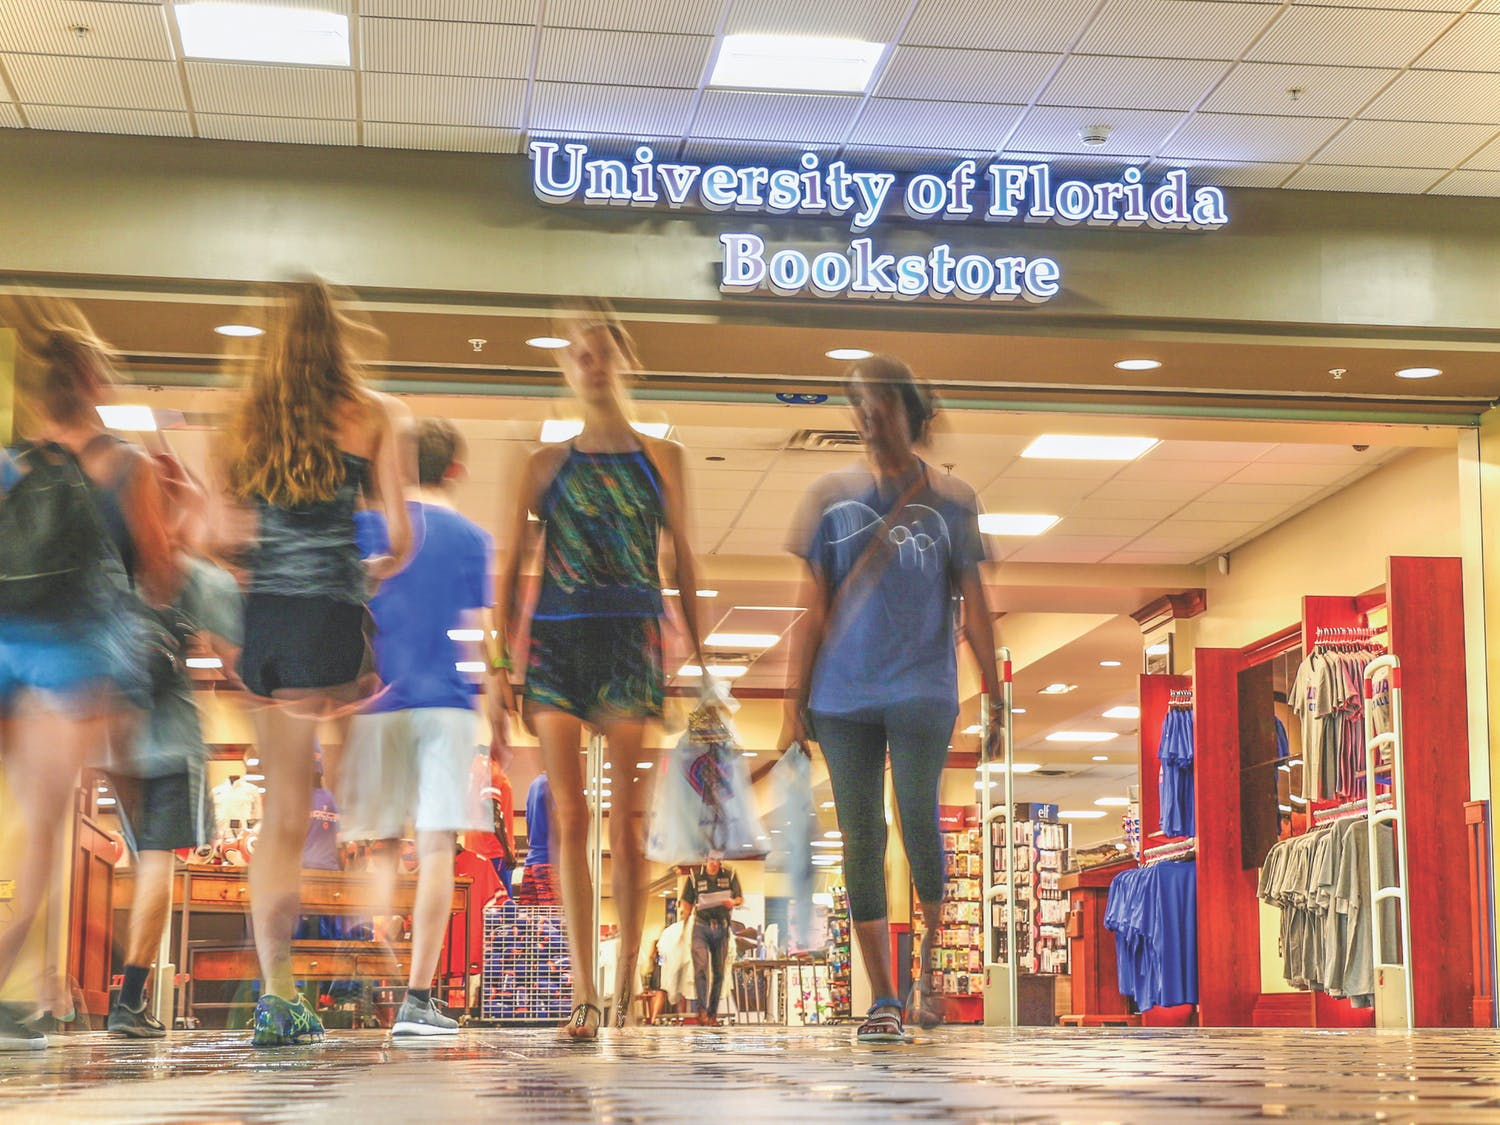 This year marks the fourth annual Rally in the Swamp, a student pep rally held to start the 2017-2018 school year on the right foot. Students were invited to play games and welcomed back to school by Coach Jim McElwain, Athletic Director Scott Stricklin and UF President Kent Fuchs. Most importantly, attendees were taught the great game-day traditions for Saturday football.